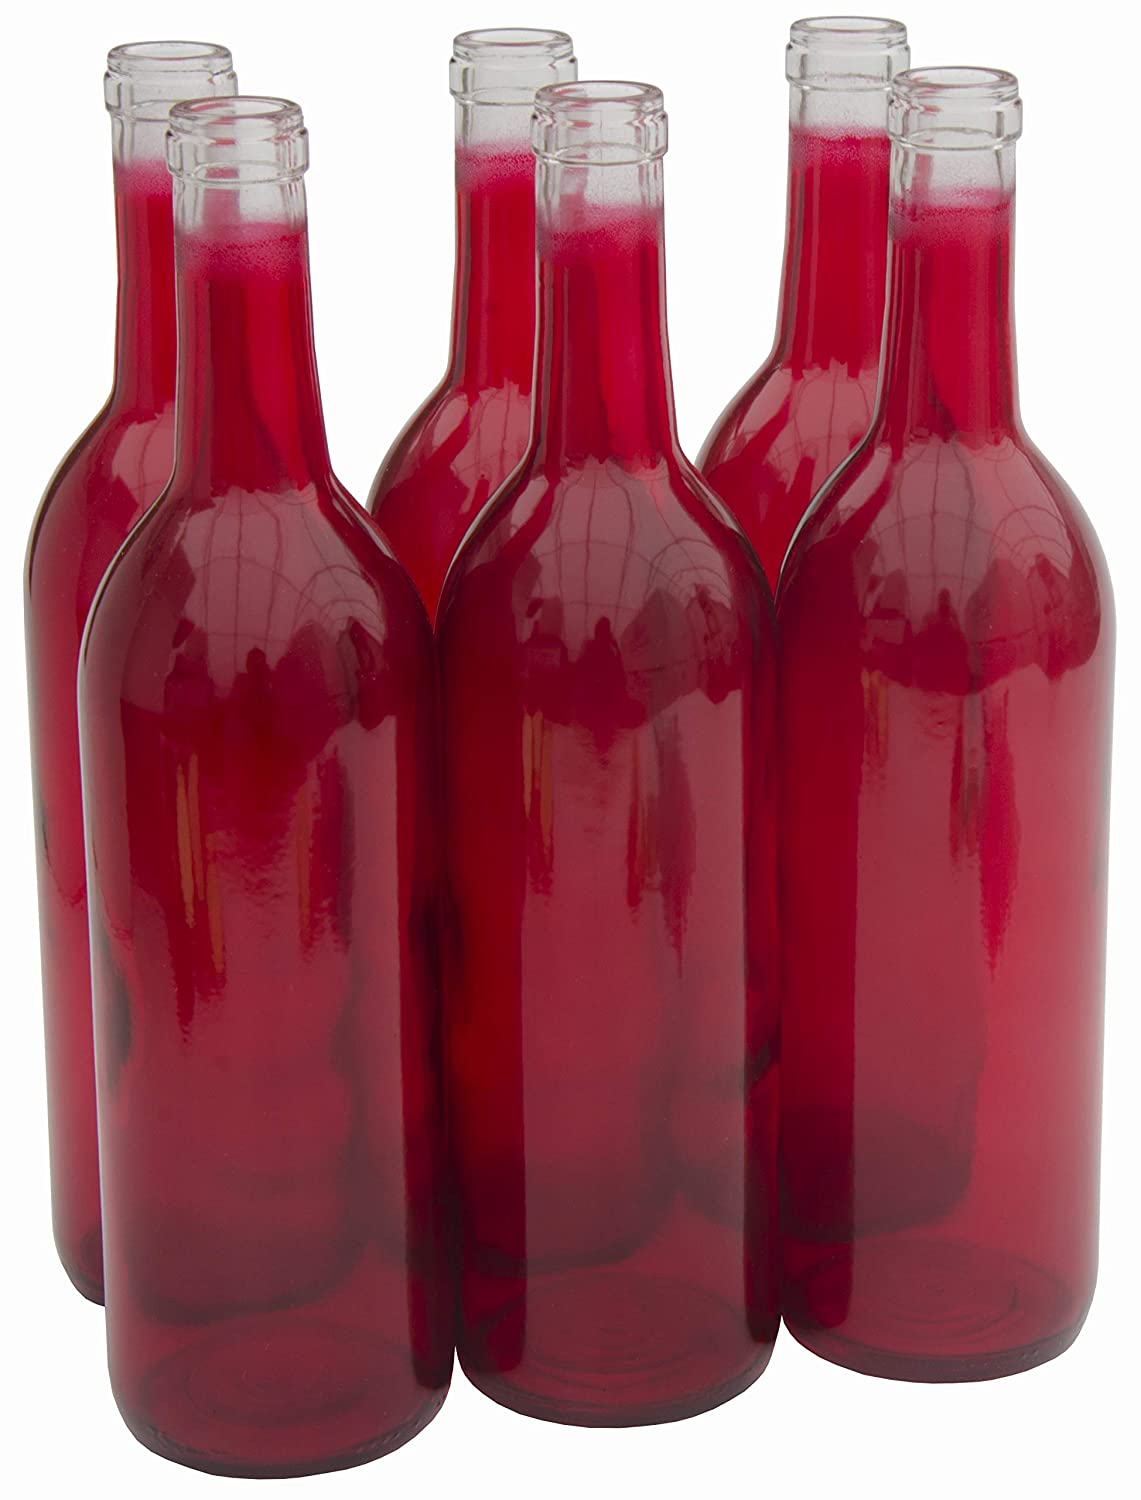 North Mountain Supply 750ml Glass Bordeaux Wine Bottle Flat-Bottomed Cork Finish - Case of 6 - Red